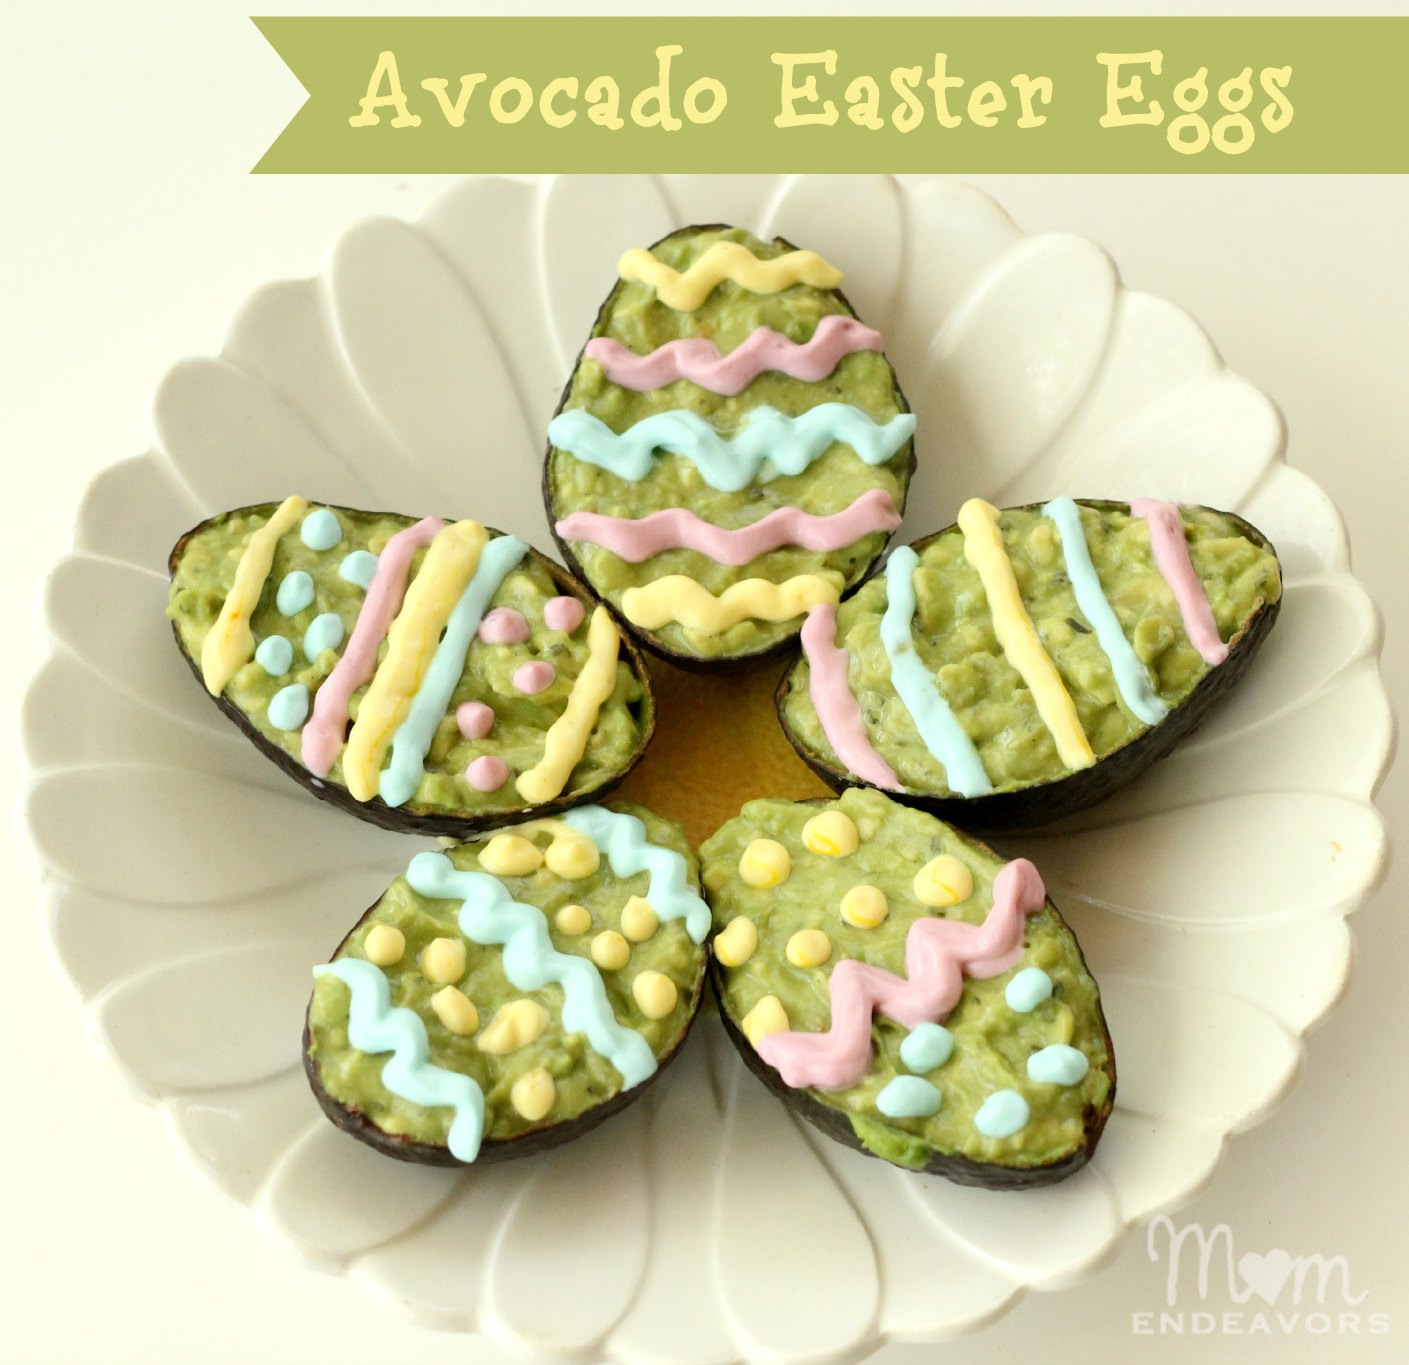 Avocado Easter Eggs